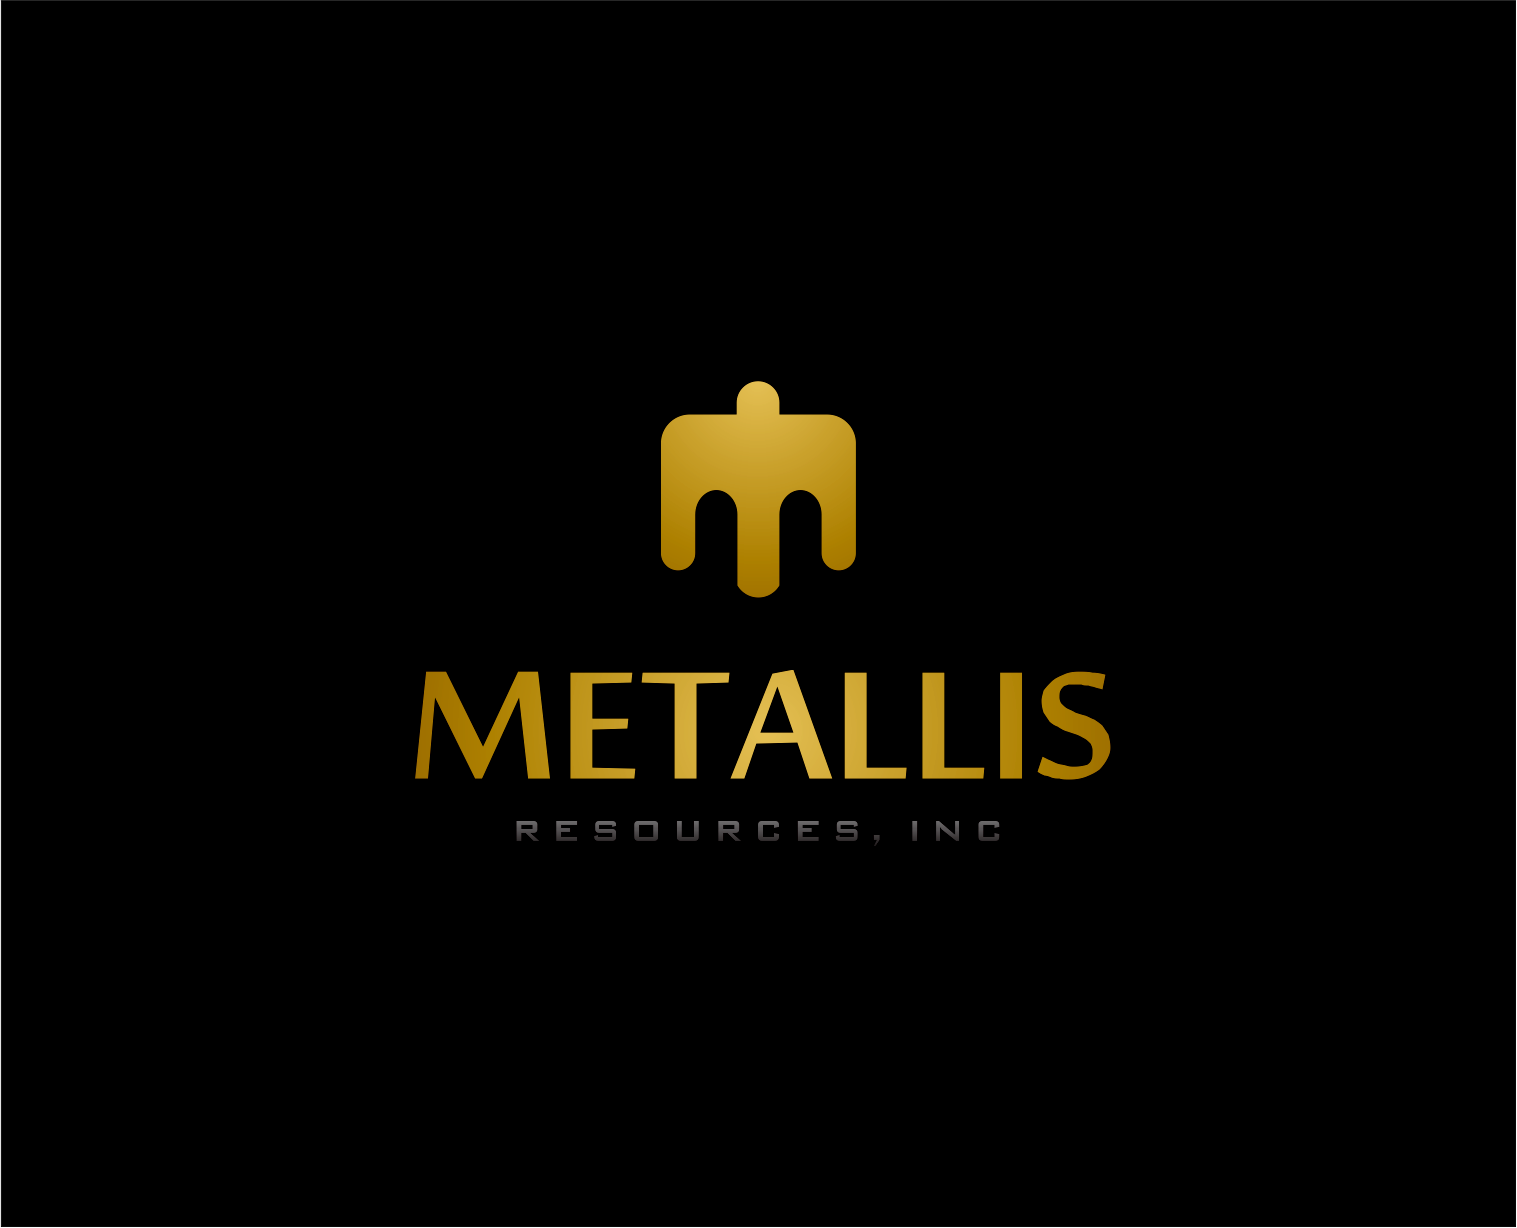 Logo Design by Armada Jamaluddin - Entry No. 143 in the Logo Design Contest Metallis Resources Inc Logo Design.